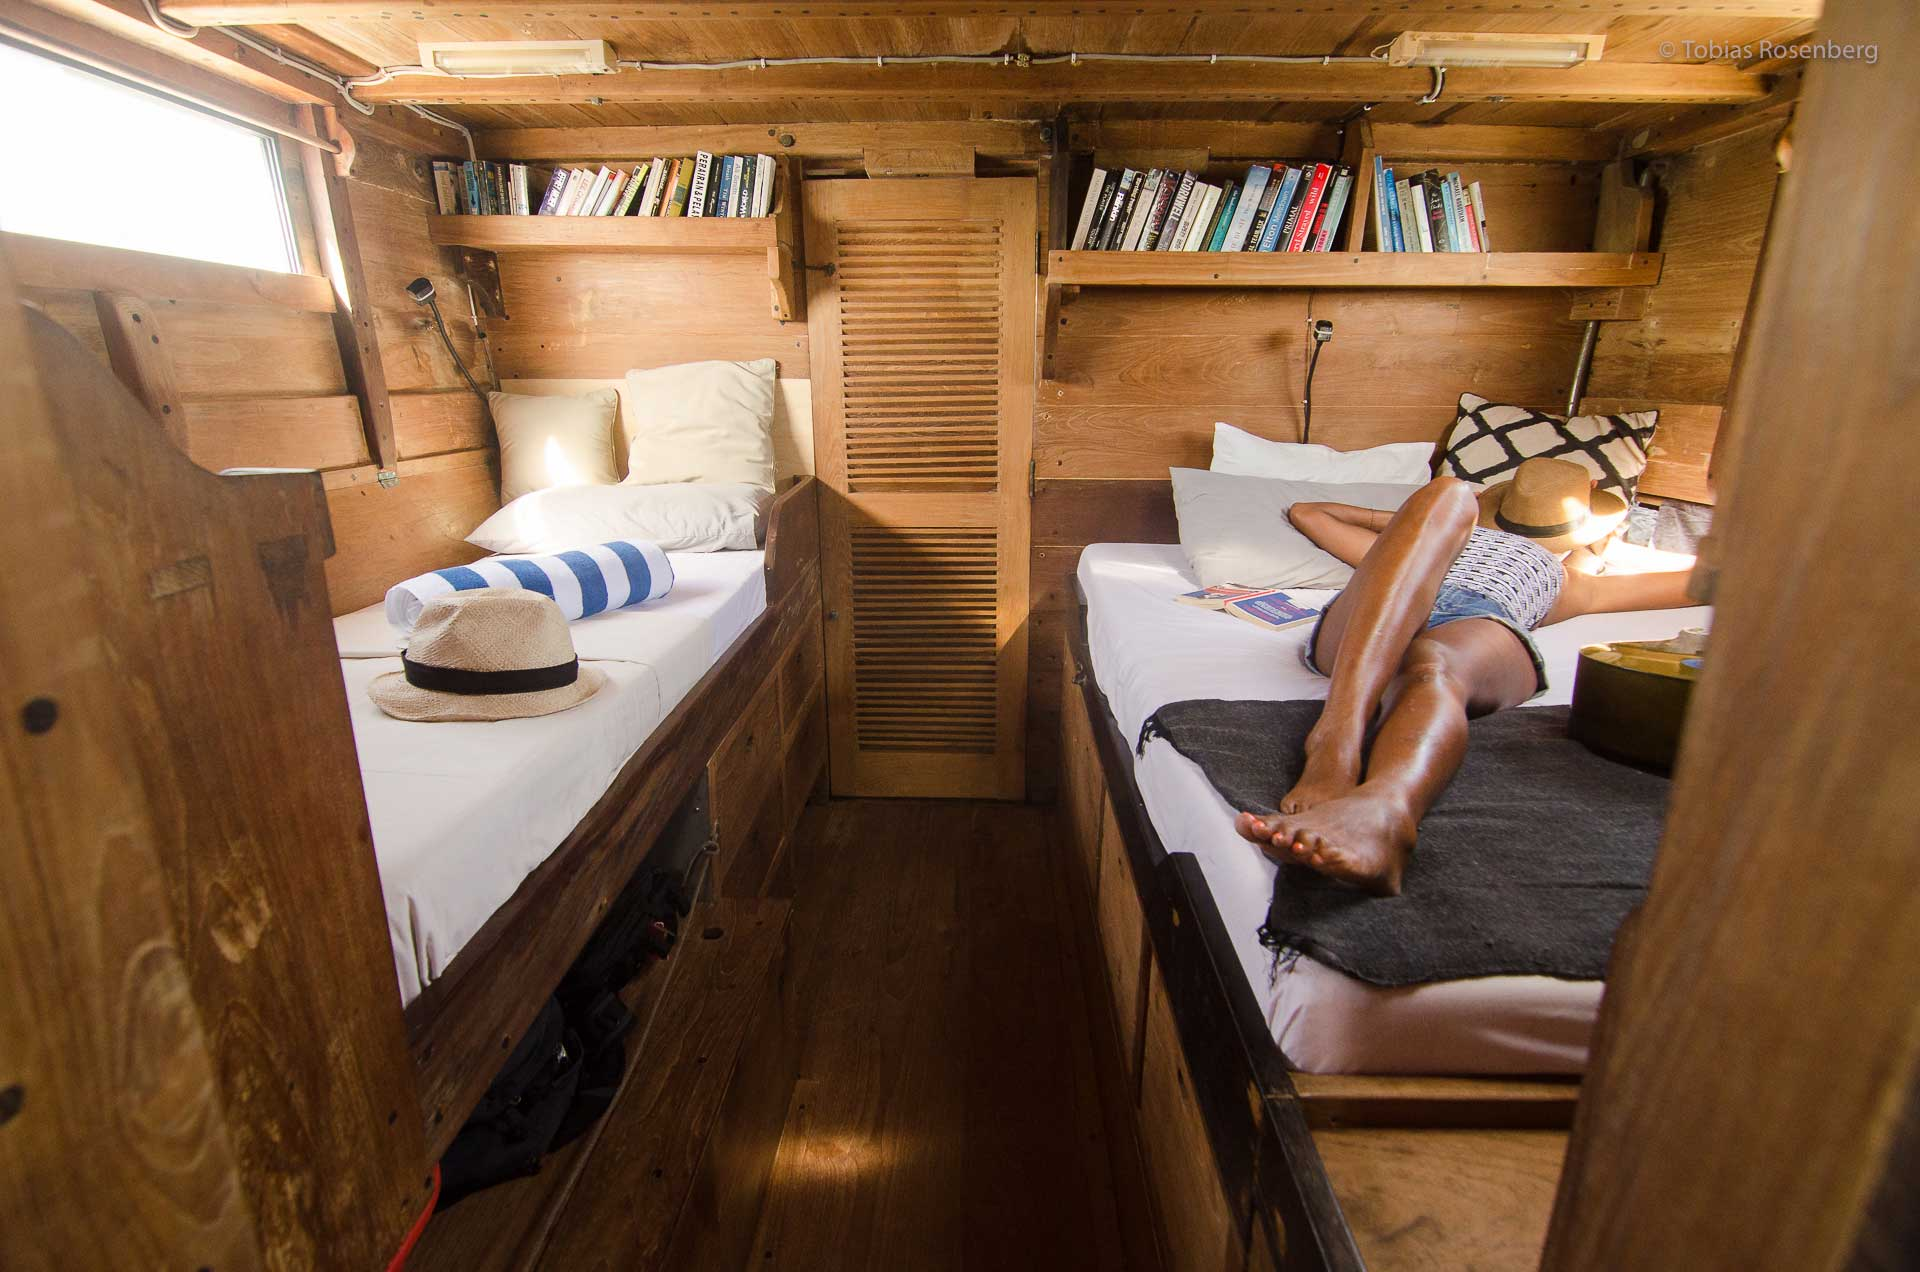 A surfer chilling in boat cabin. Eat, sleep, surf aboard Sri Noa Noa, cozy teak wood cabins and new matrasses! Indo Surf Charter, Sumba Surf Charter, Sumba Surf, Indo Surf Charter, Lombok Surf Charter, Sumbawa Surf Charter, Surf Charter in Indonesia, Surf Boat in Indonesia, Surf in Sumba, Surf in Rote, Surf Charter Indo